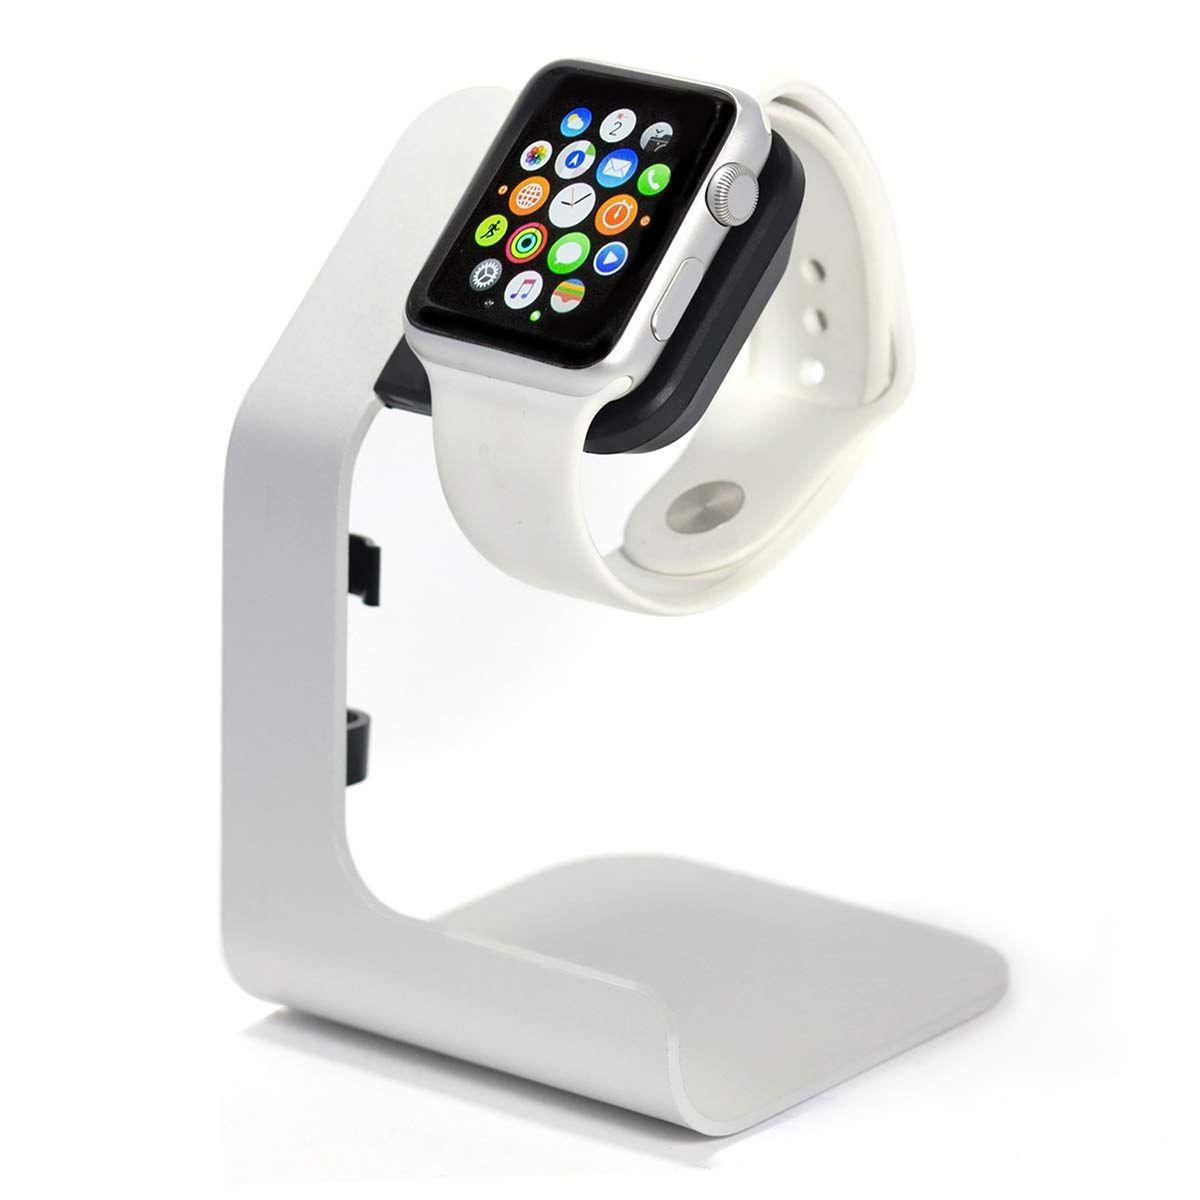 transeca-apple-watch-stand